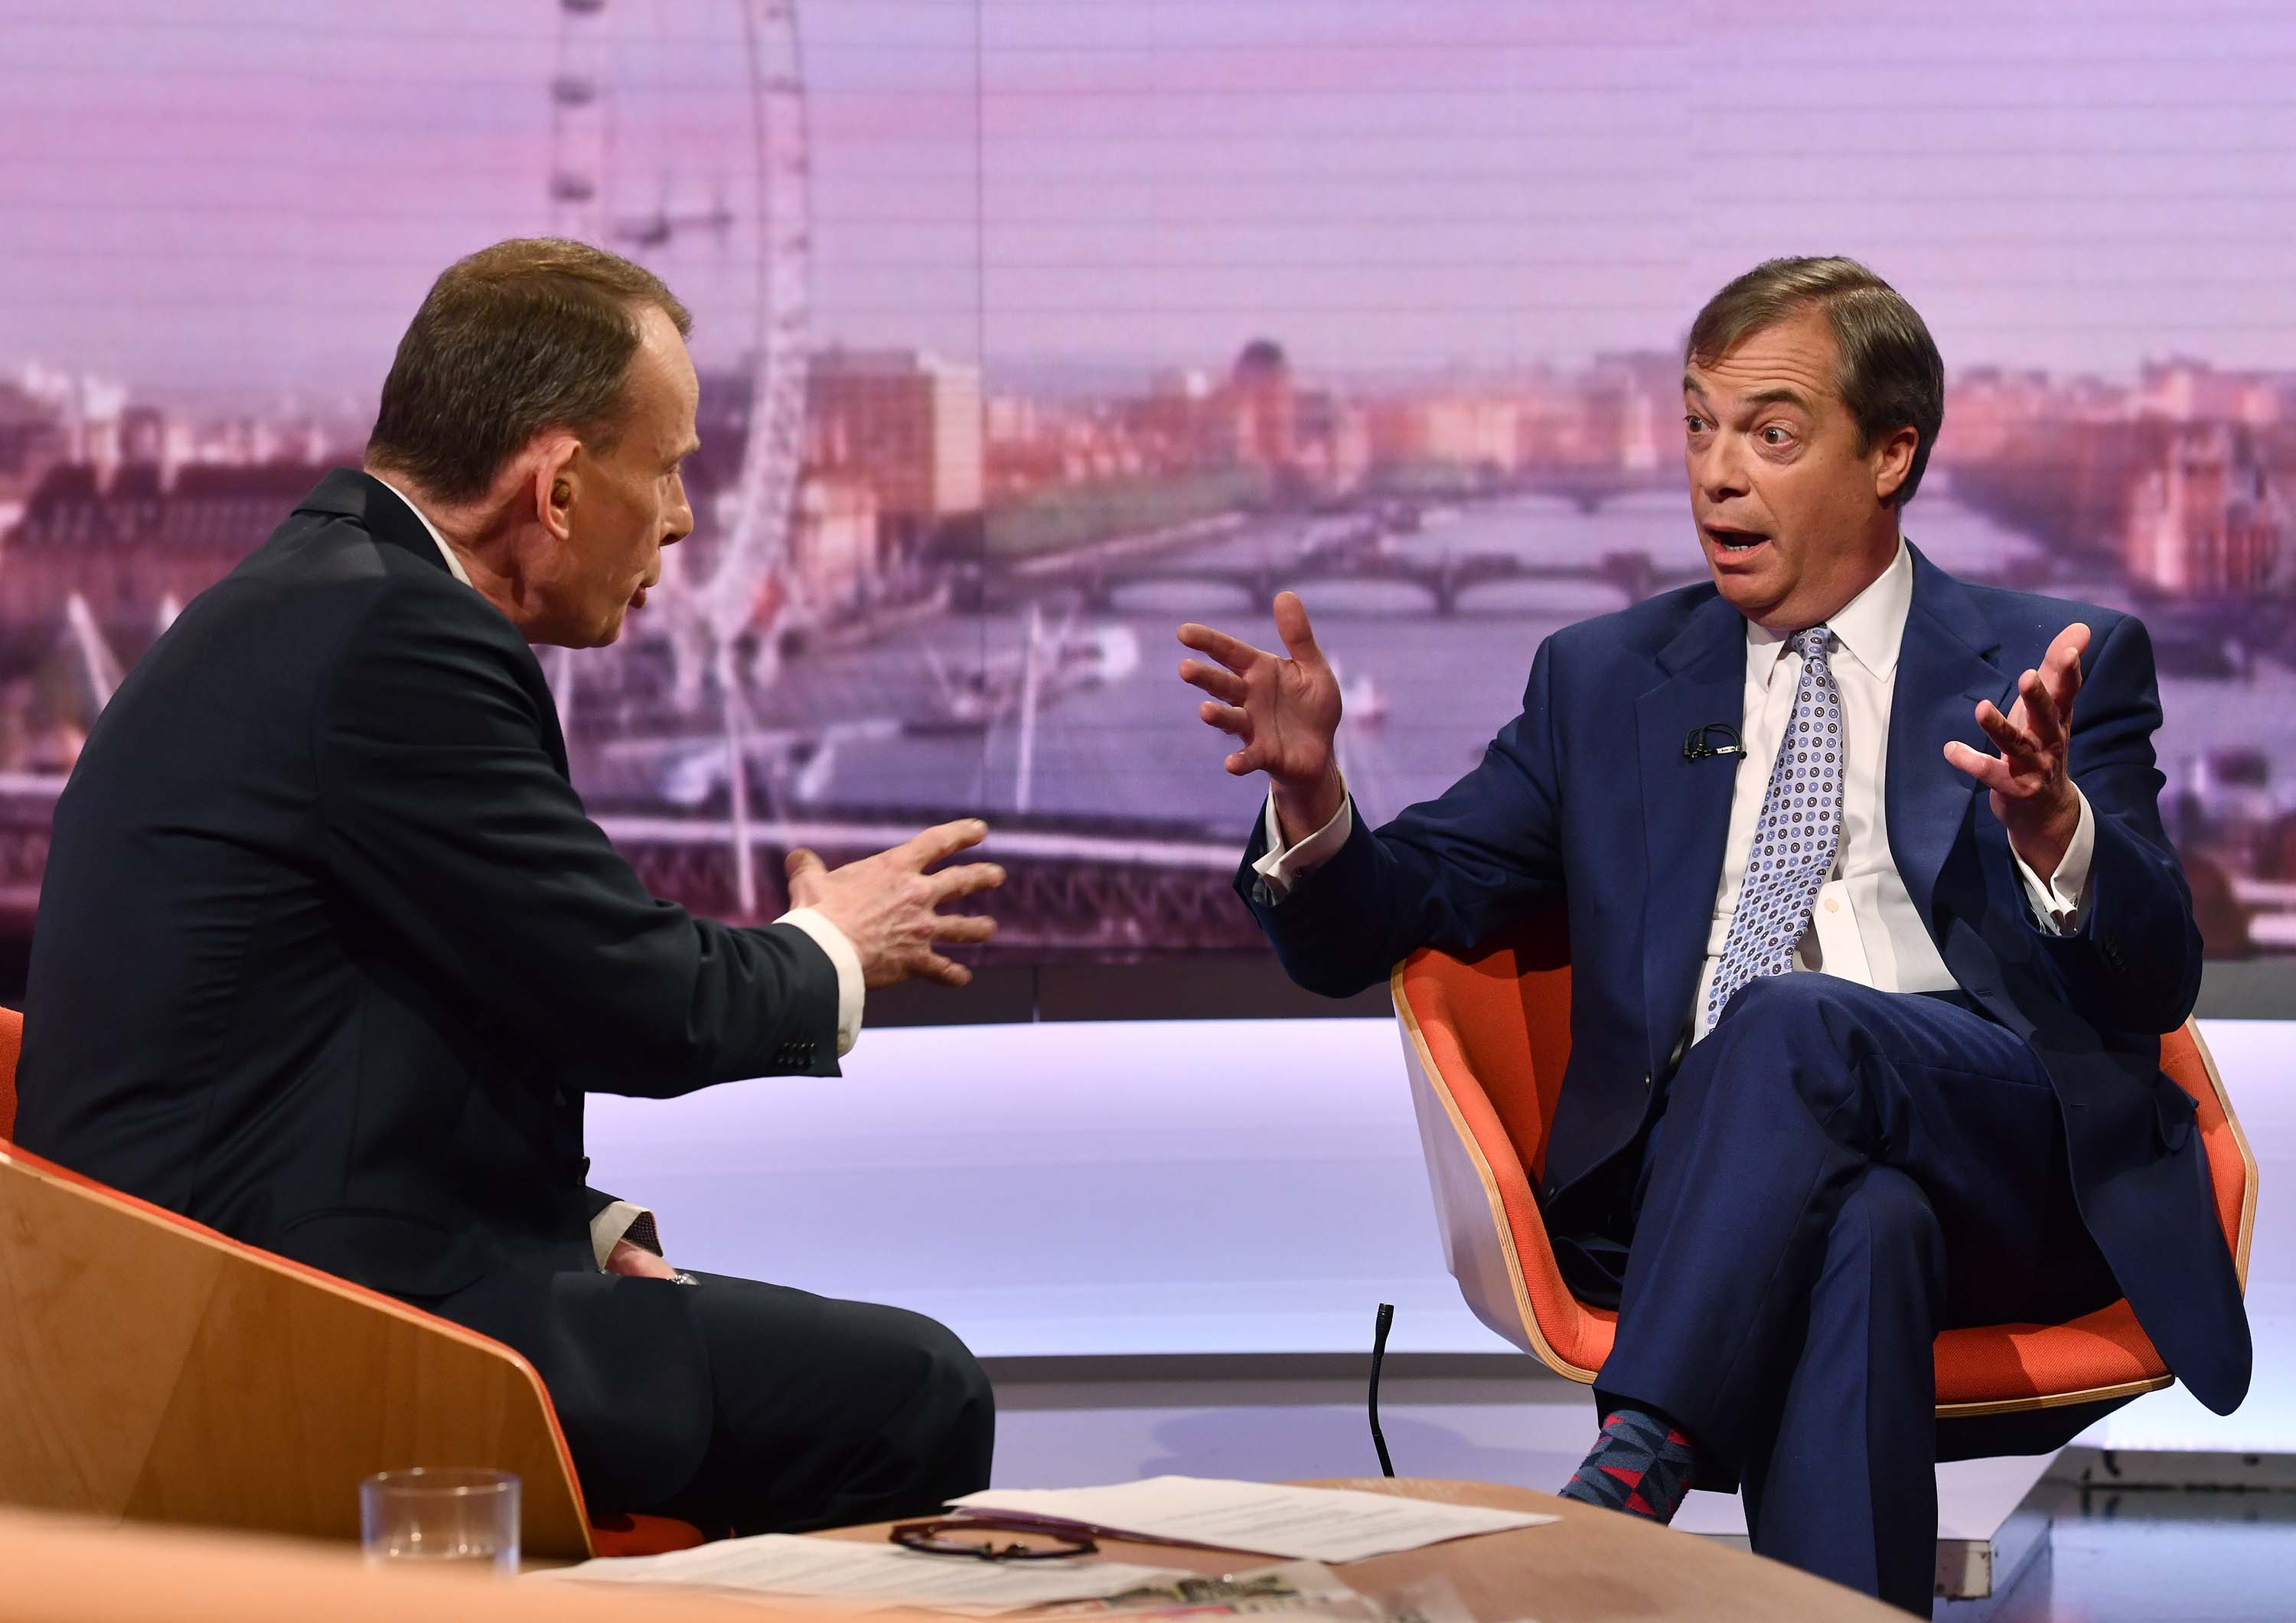 Nigel Farage Reveals Identity Of The Brexit Party's Major Donor